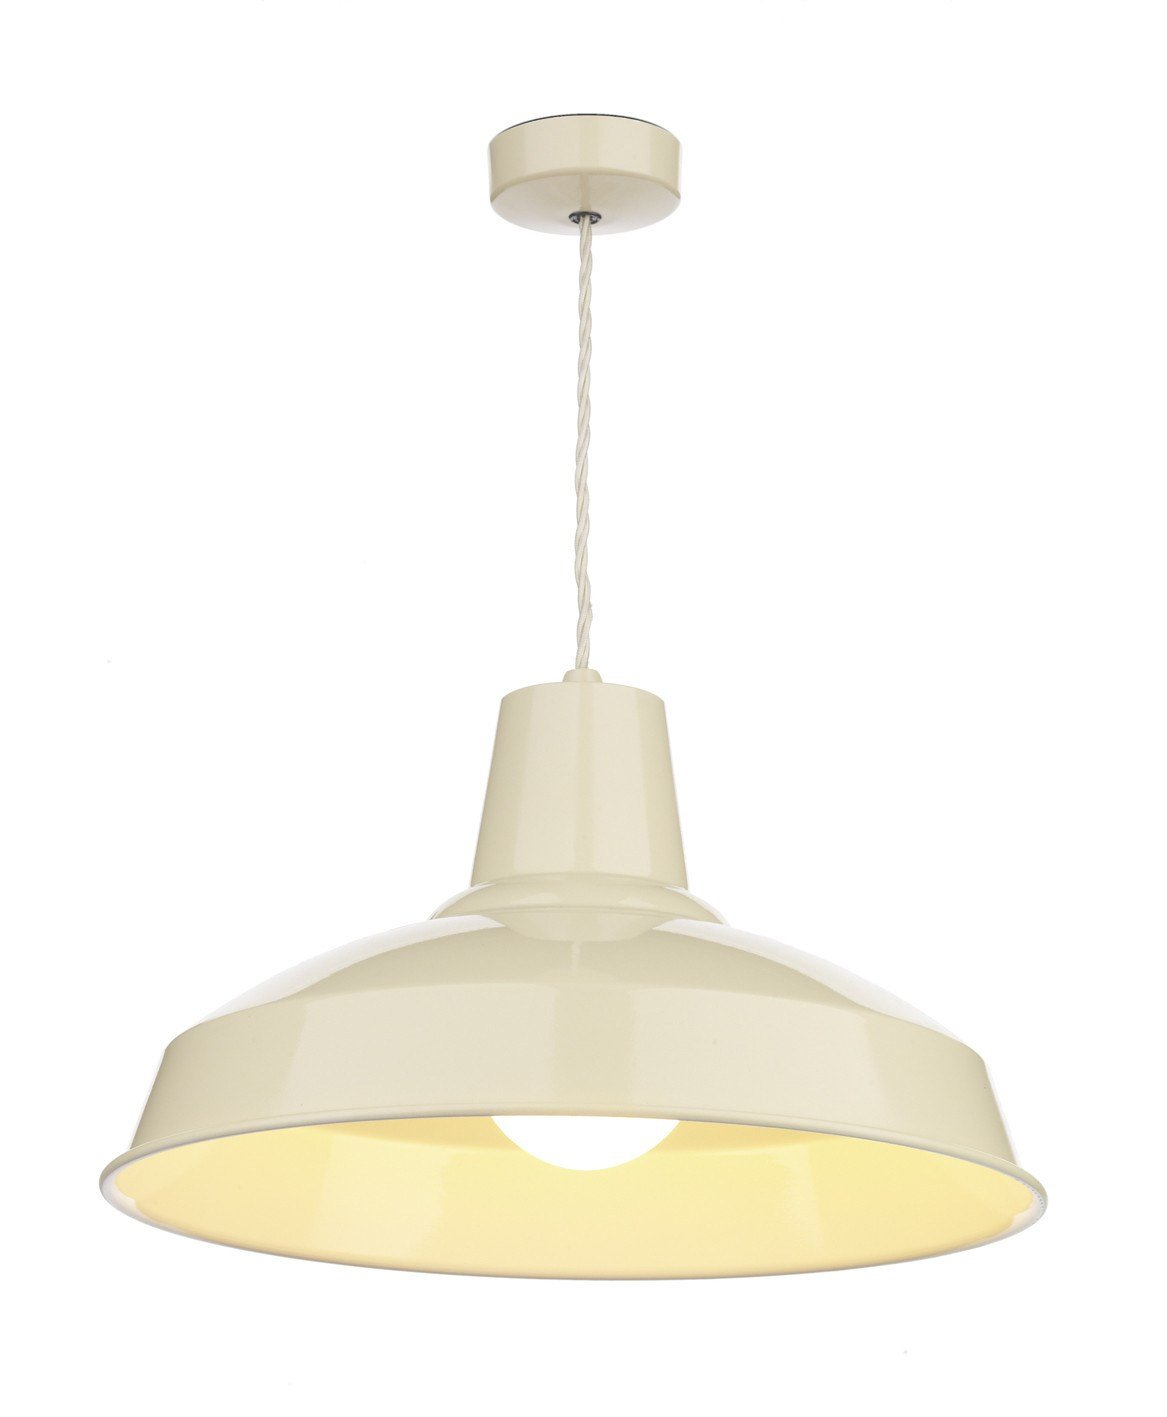 Reclamation Cream Lamp Ceiling Light - London Lighting - 1